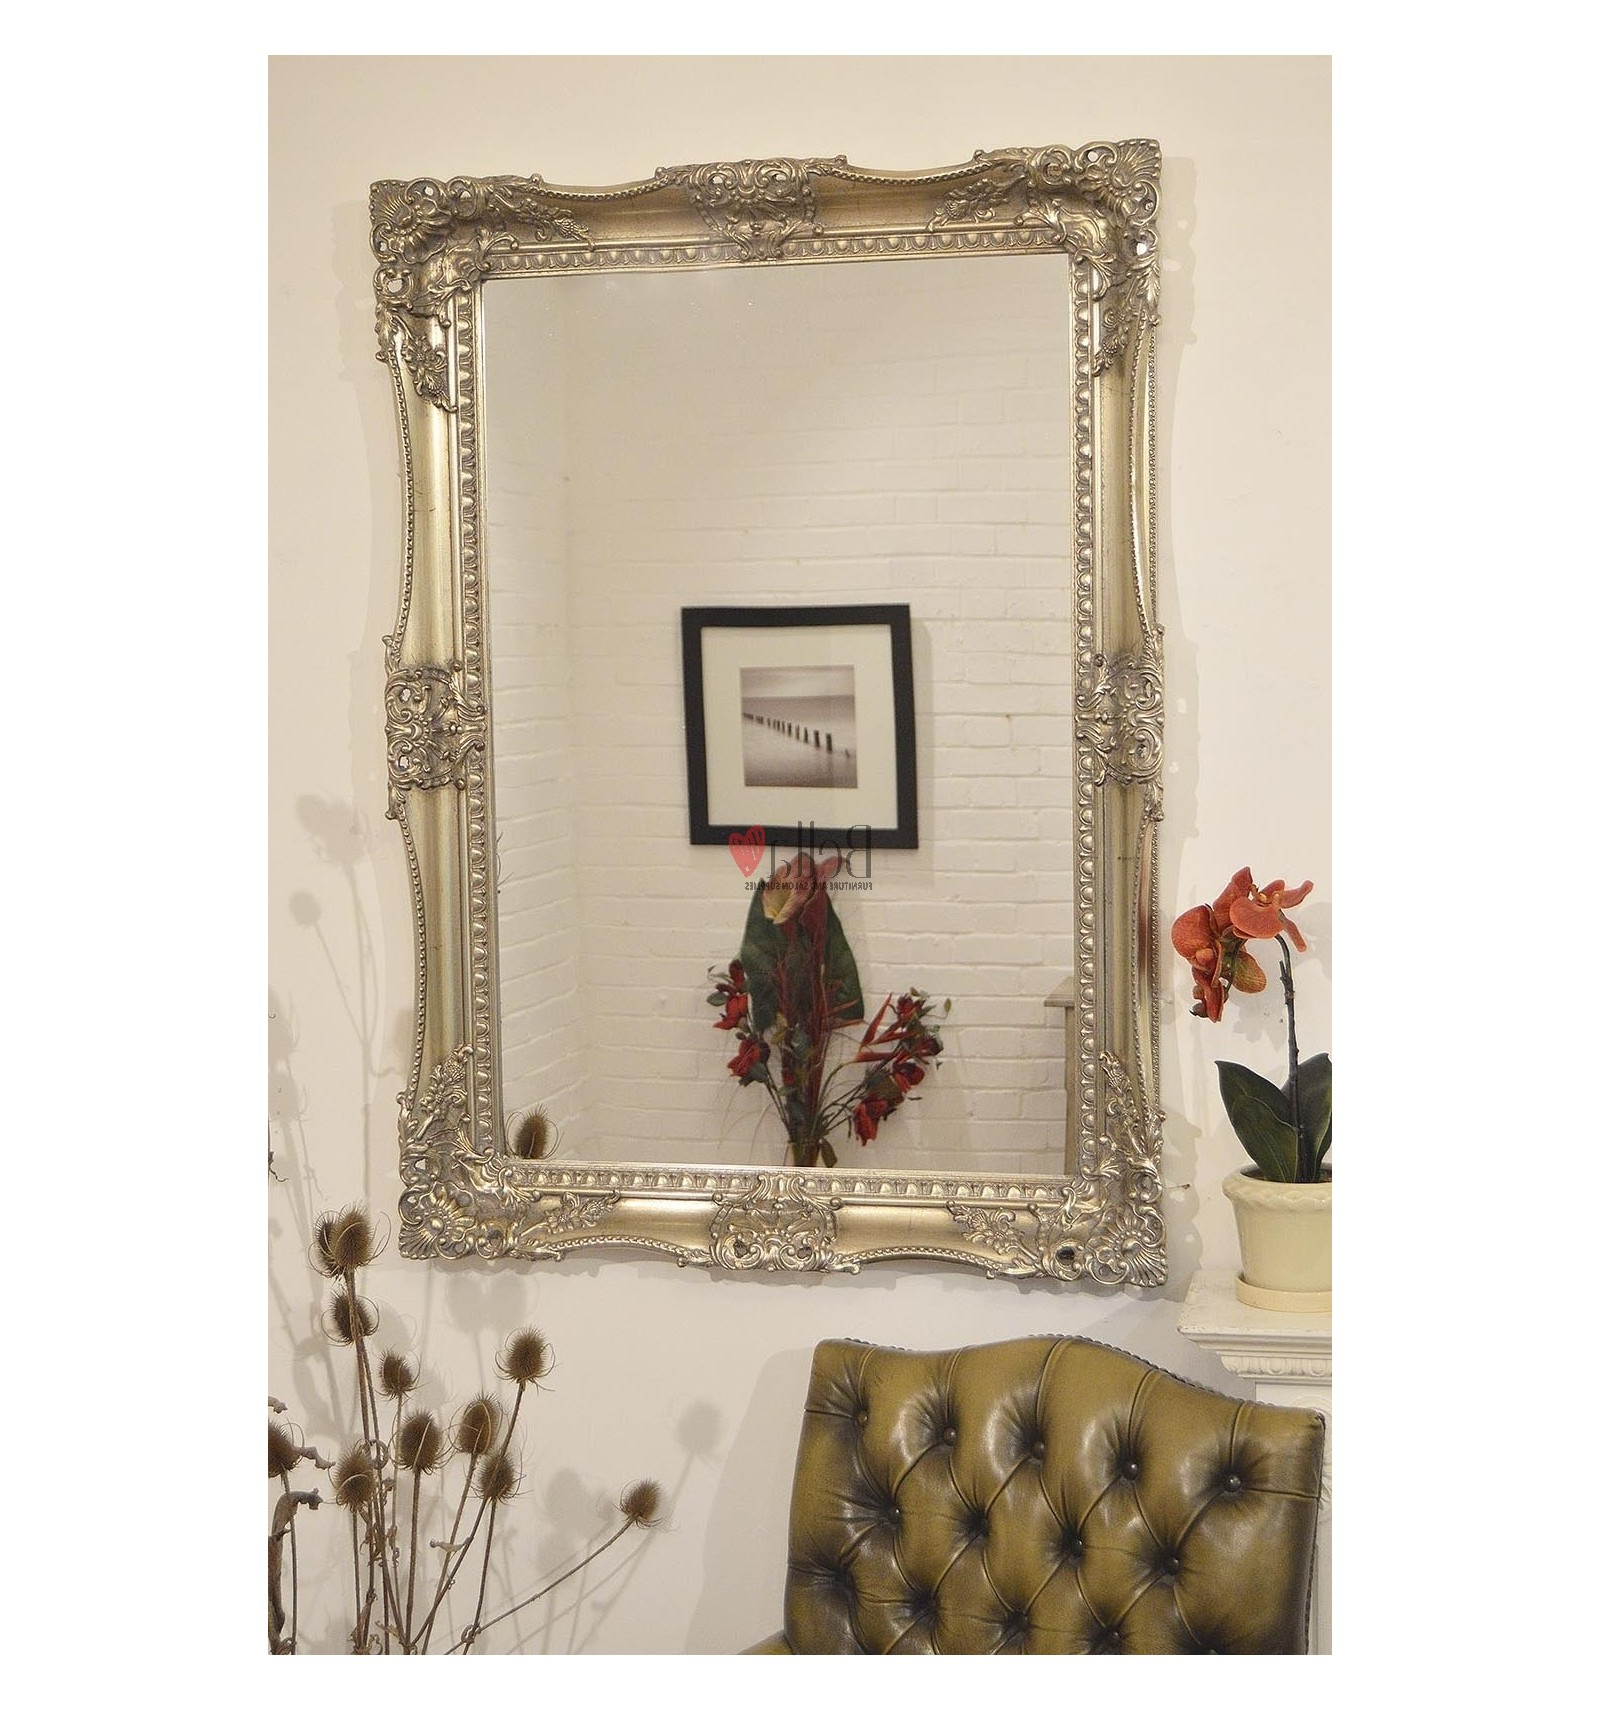 Decorative Framed Wall Mirrors Inside Most Recent Antique Wall Mirror With A Decorative Frame (View 17 of 20)